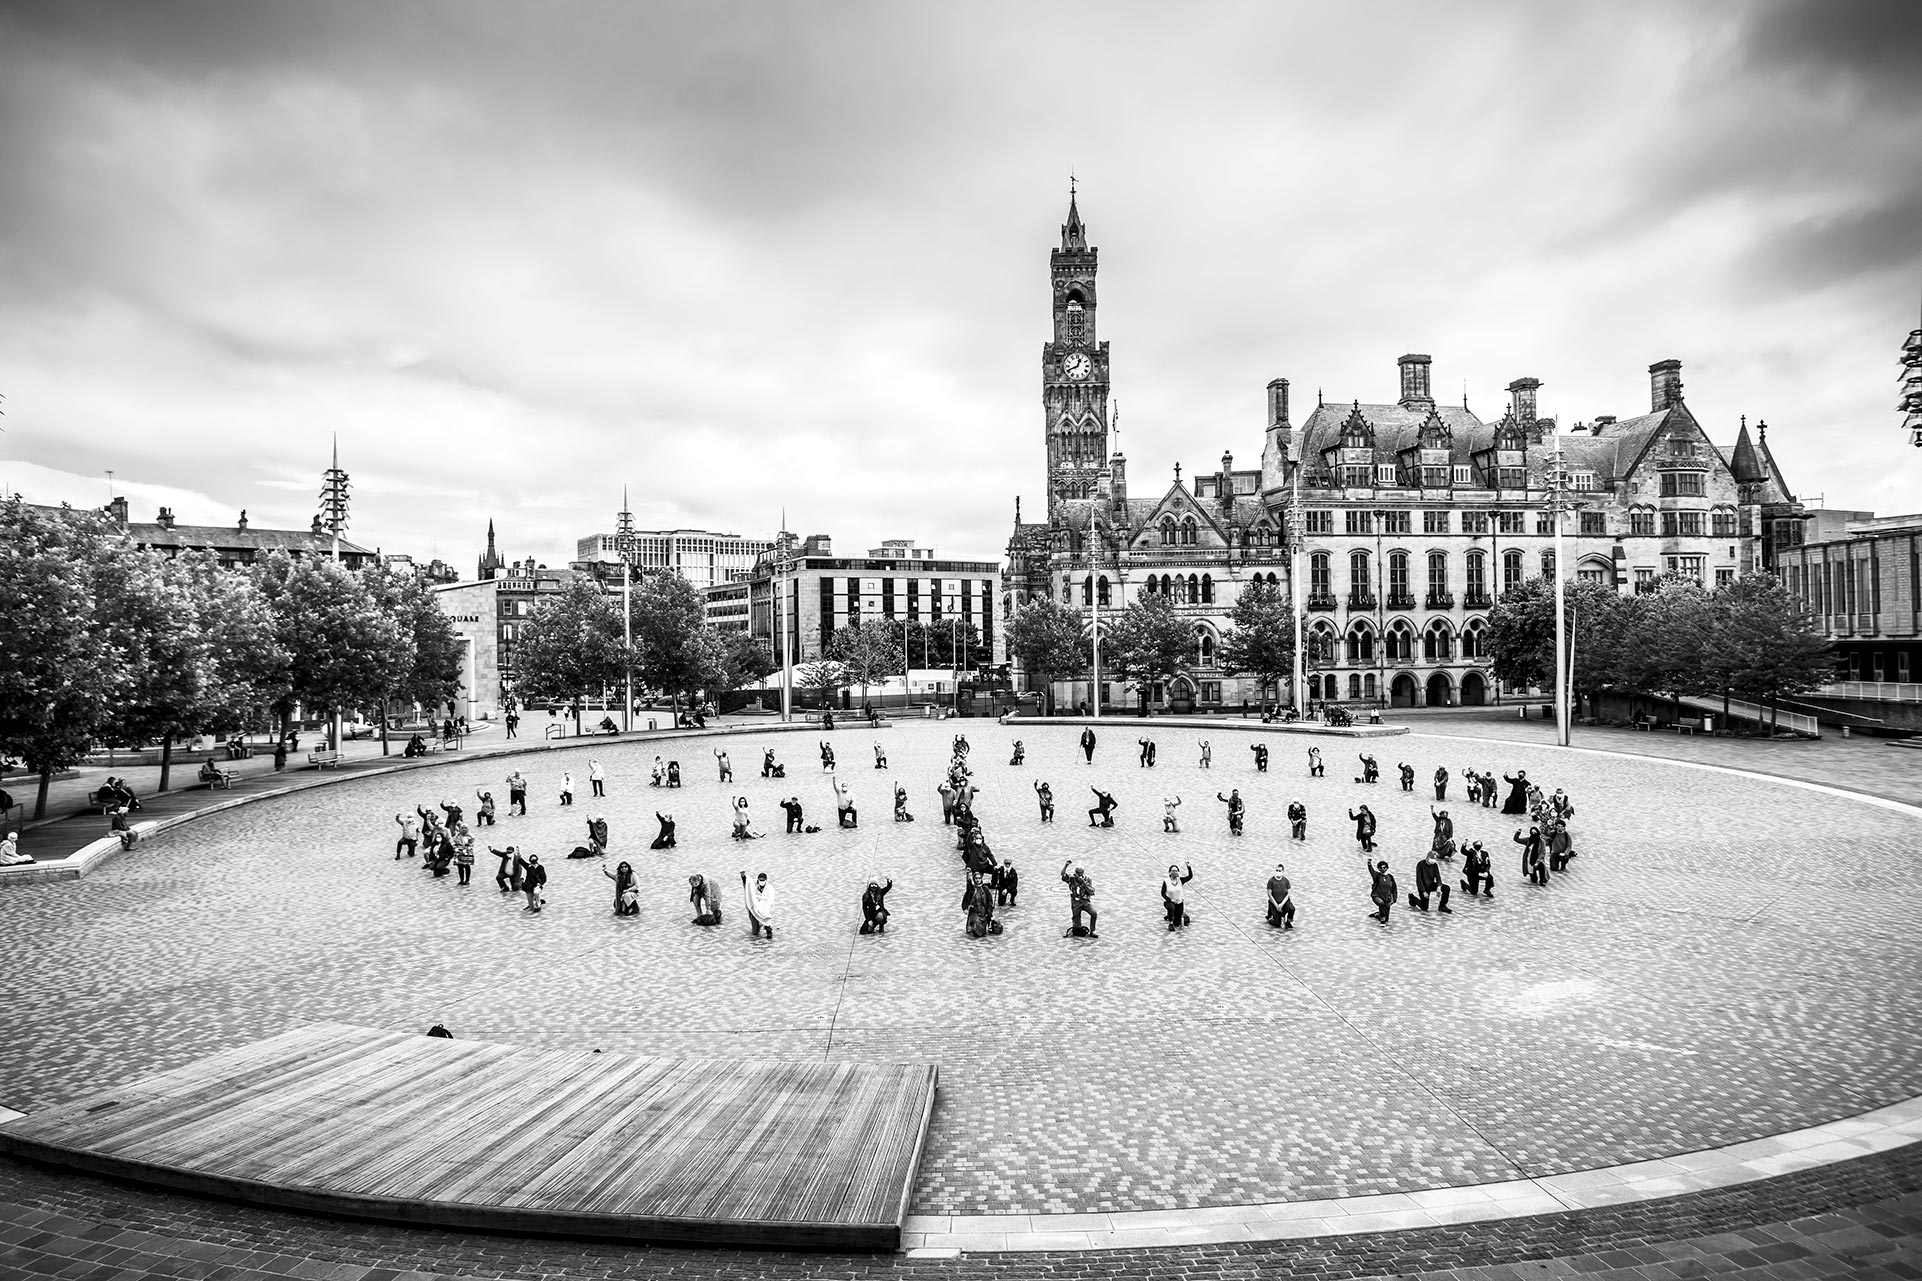 CND campaigners form the shape of the CND logo in Bradford